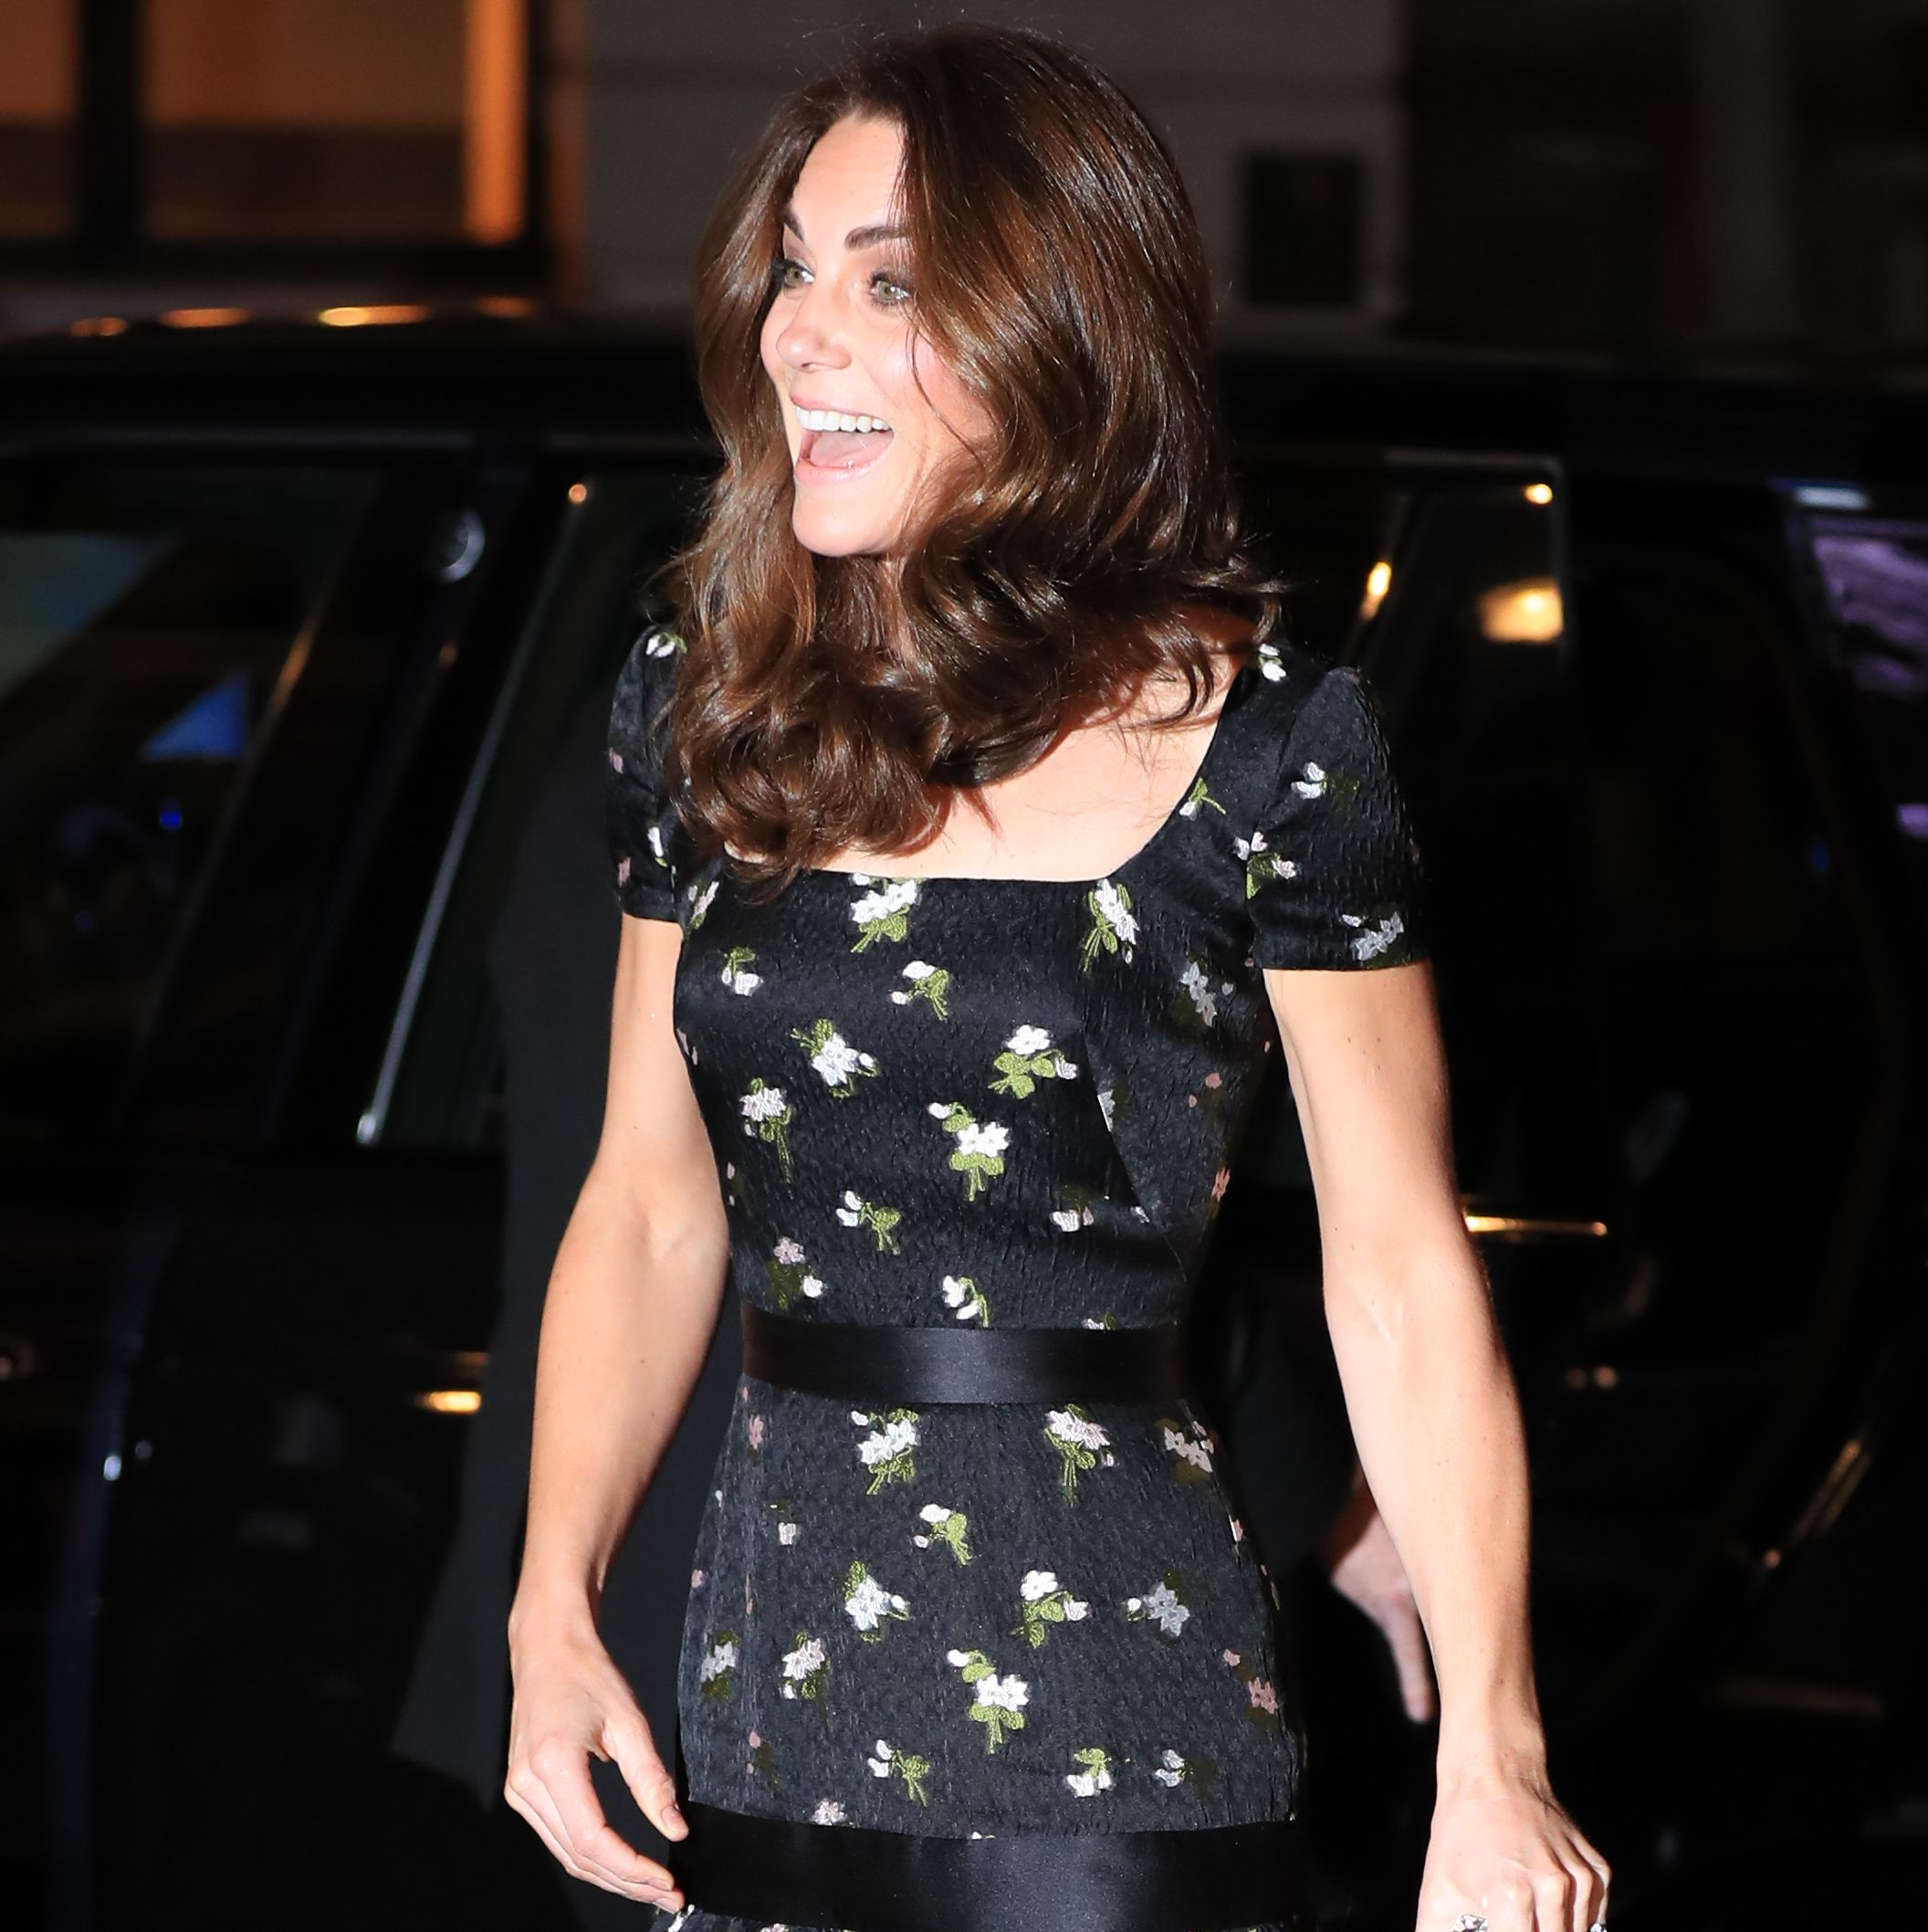 Kate Middleton Wears a Floral Alexander McQueen Gown at to the National Portrait Gallery Gala